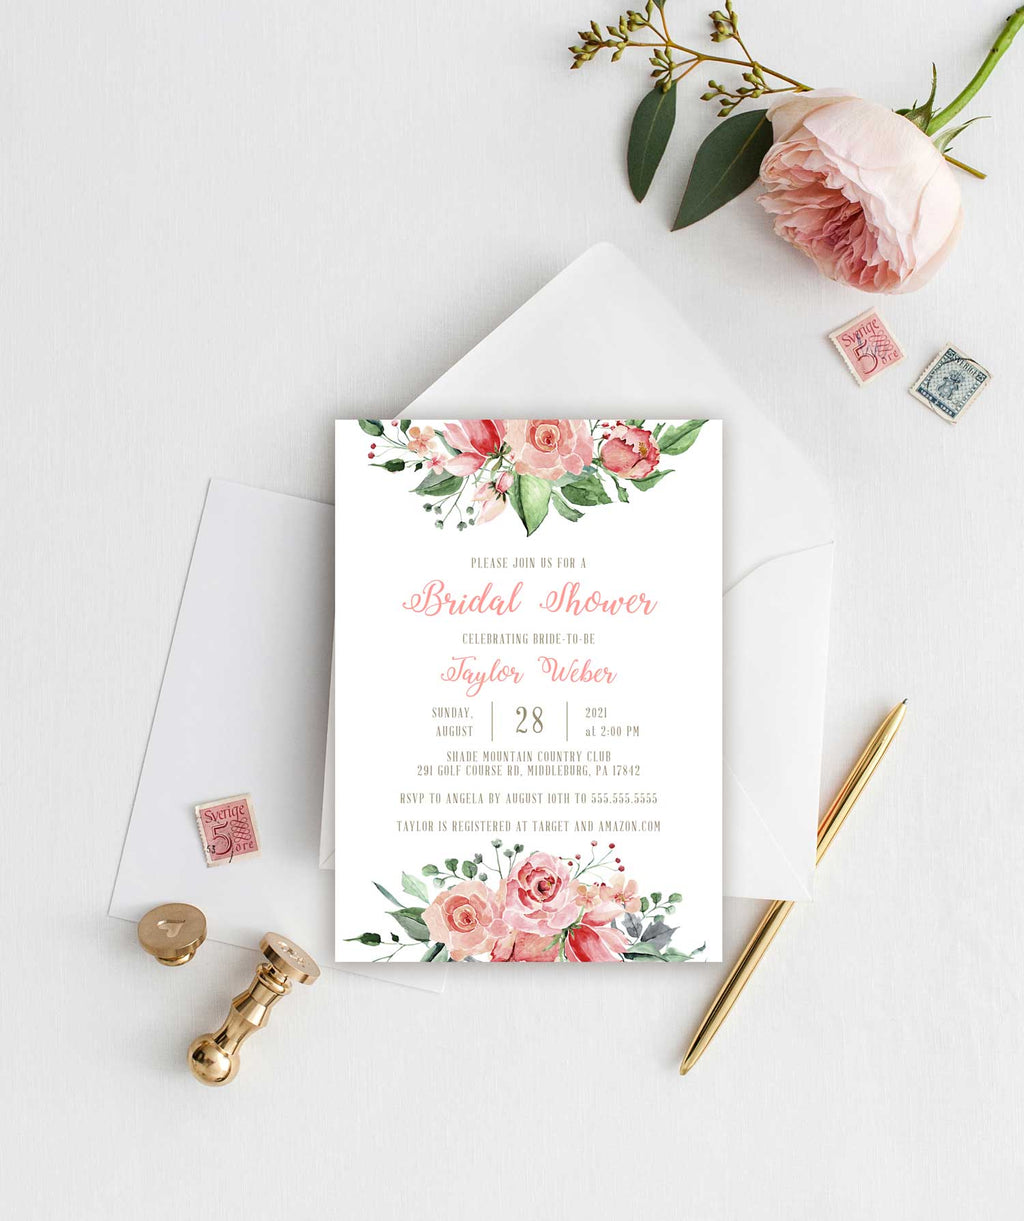 Creamy Blush Bridal Shower Invitation